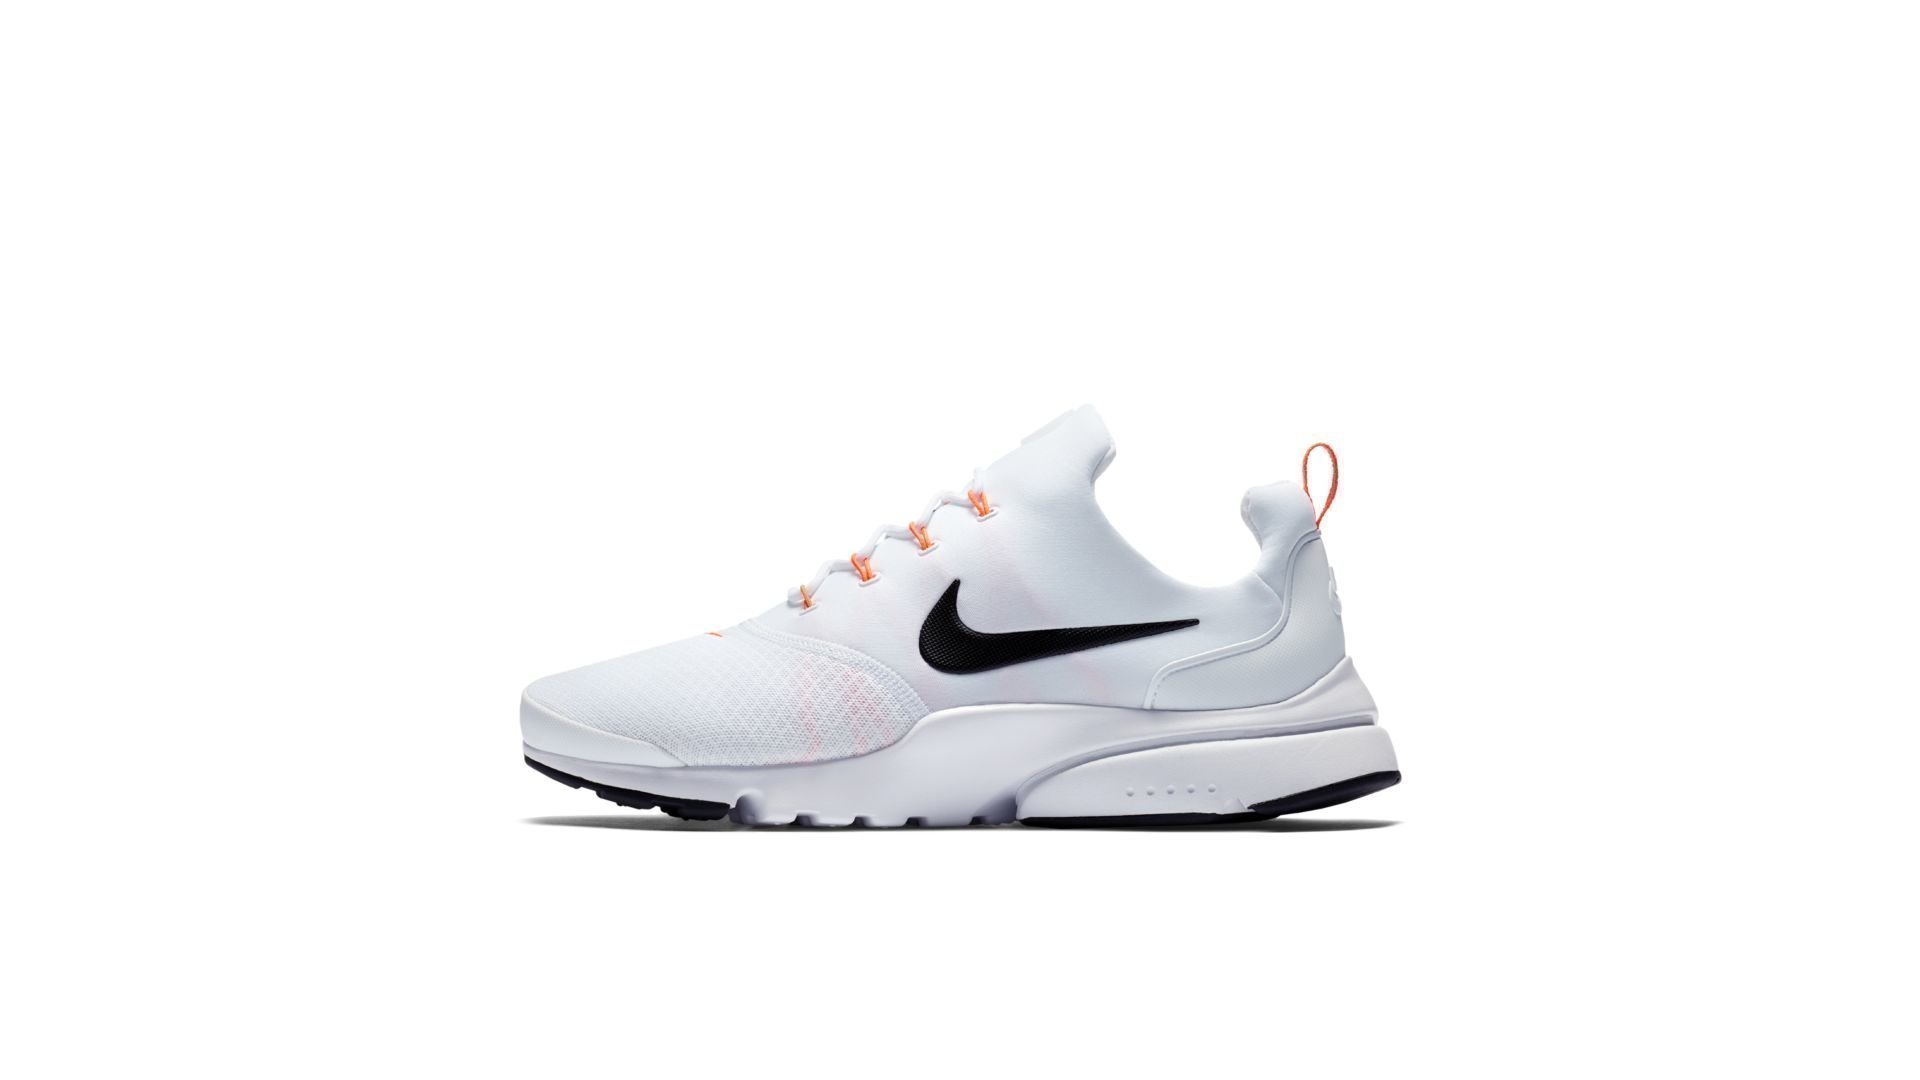 Nike Presto Fly Just Do It 'White' (AQ9688-100)